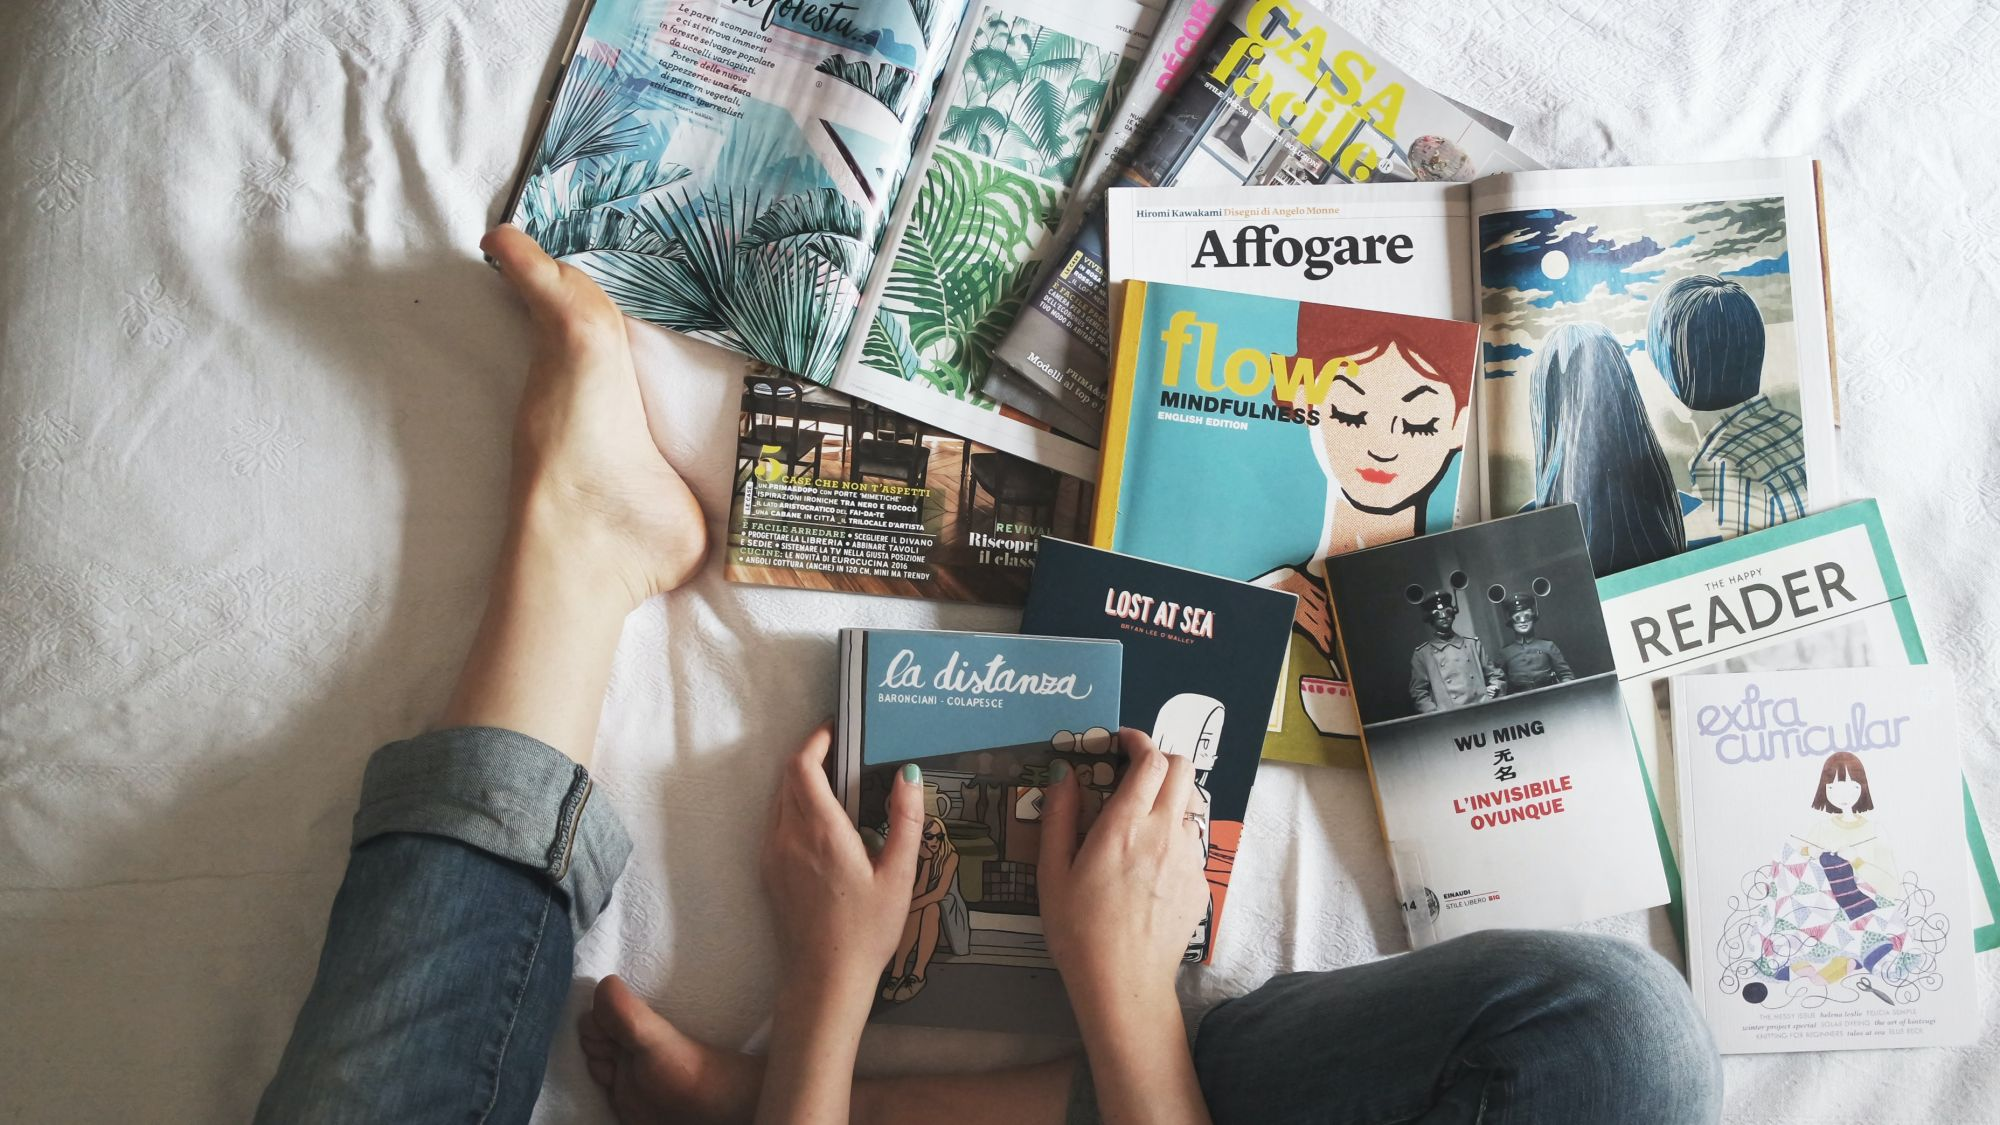 In The Time Of Covid-19, Here Are 5 Must-Read Travel Books